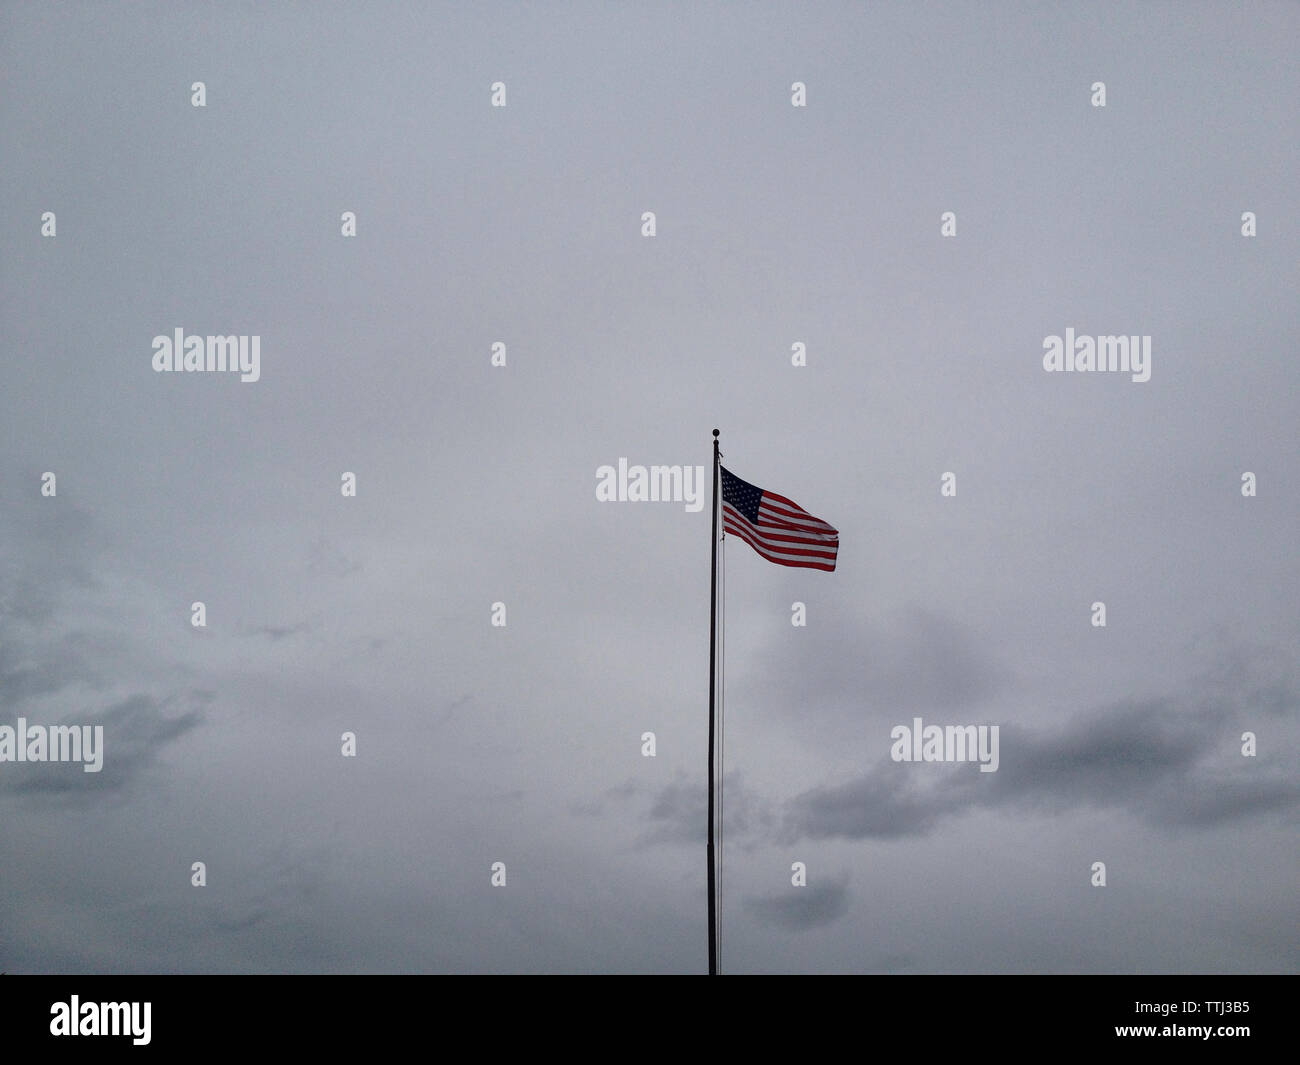 Low angle view of American flag against sky Stock Photo